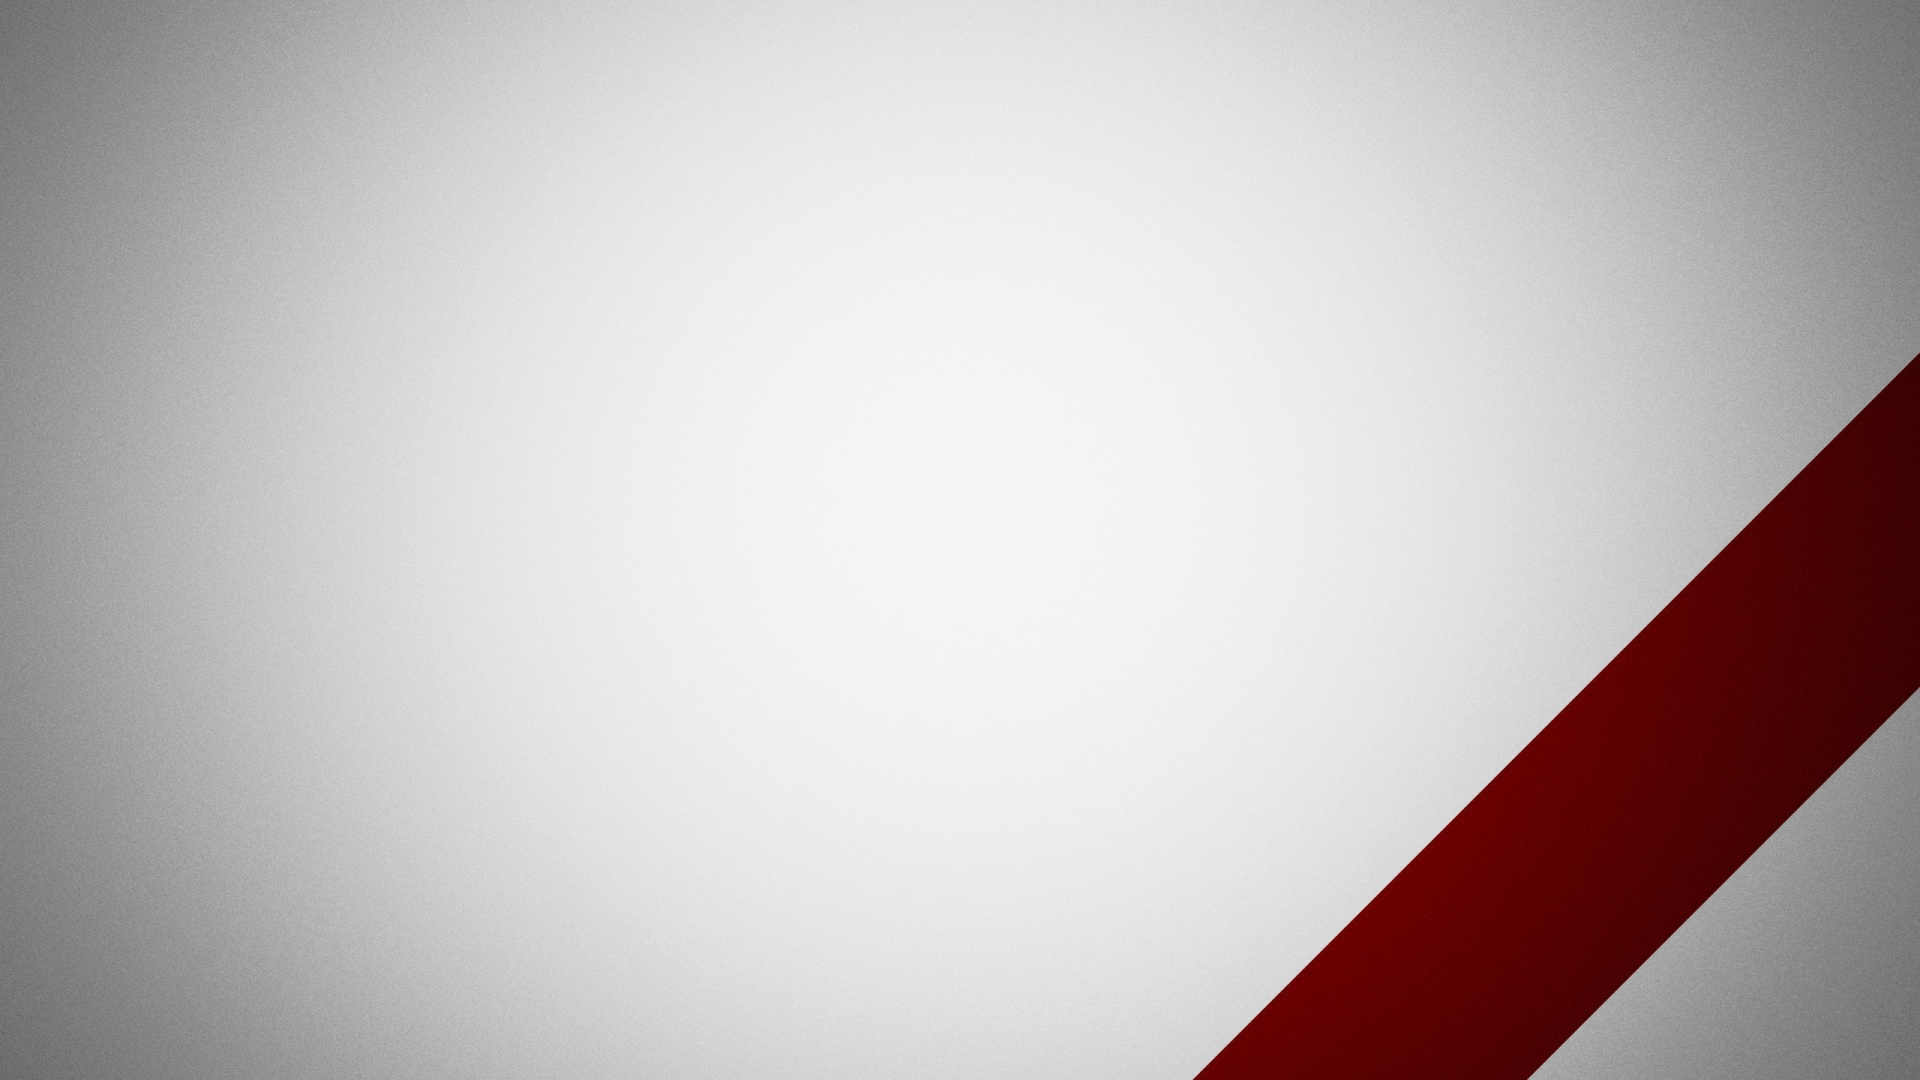 1920x1080 Red and White desktop PC and Mac wallpaper